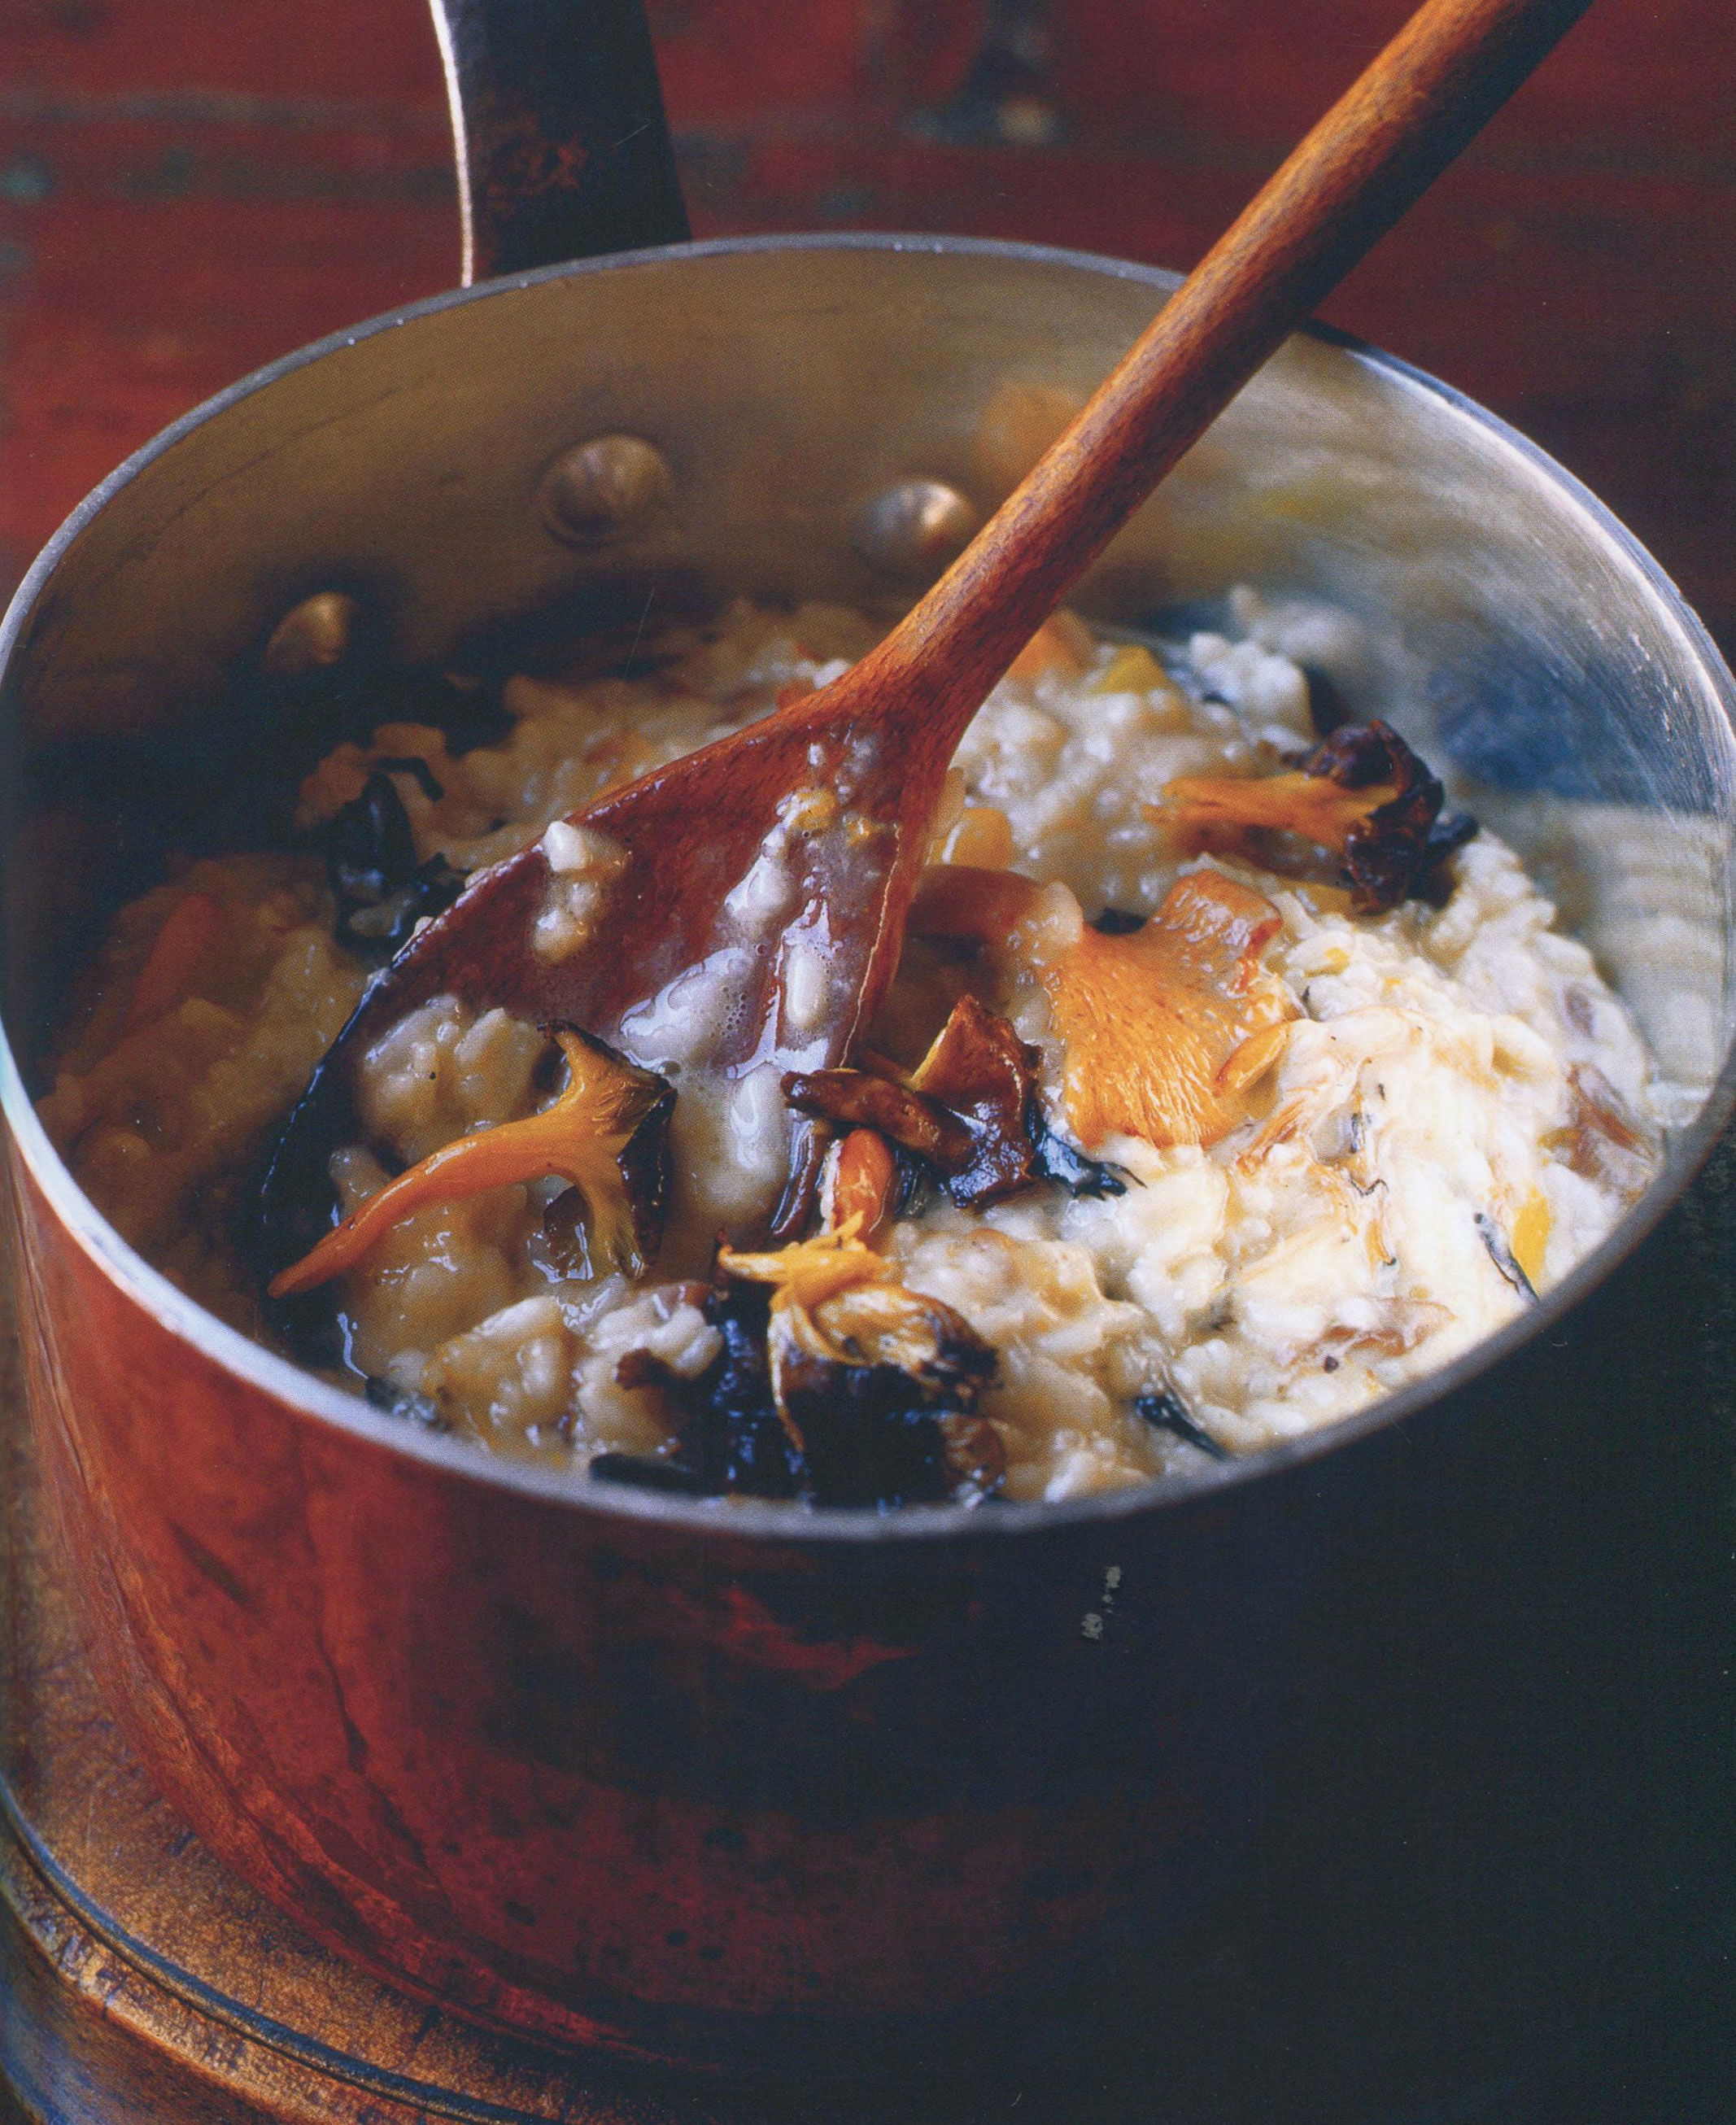 TBT Recipe: Wild Mushroom and Duck Risotto with Seasonal Variations